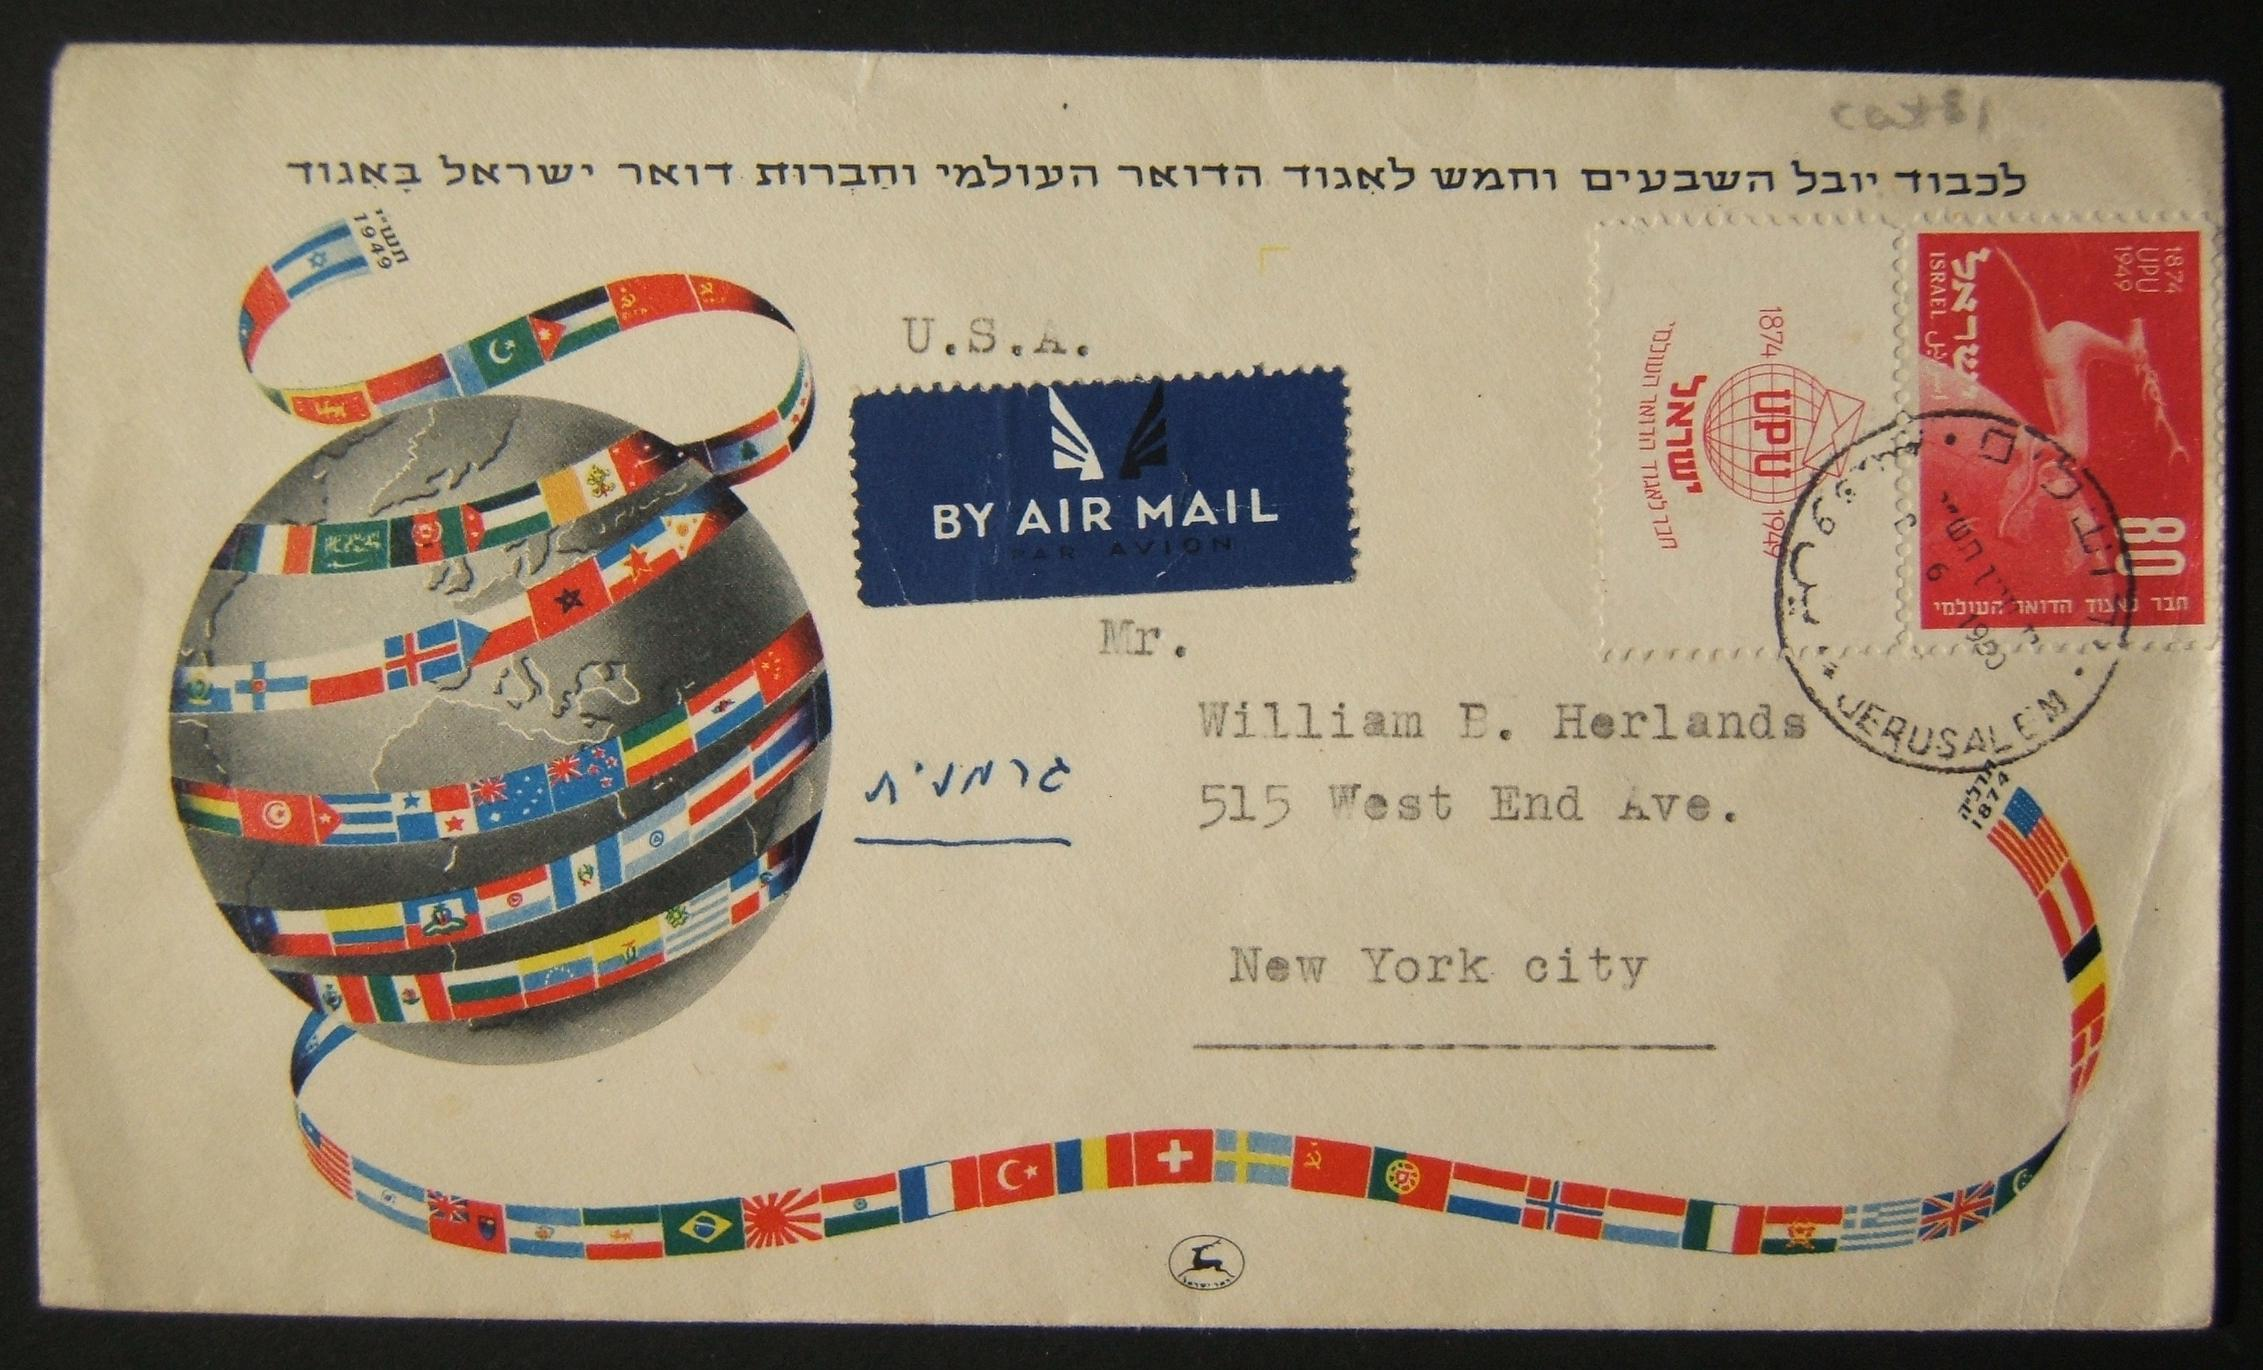 1950 UPU / rates & routes: 2-6-1950 airmailed commemorative cover ex JERUSALEM to NYC franked 80pr at the FA-2a period rate using half-tabbed 80pr (Ba28) tied by single full strike